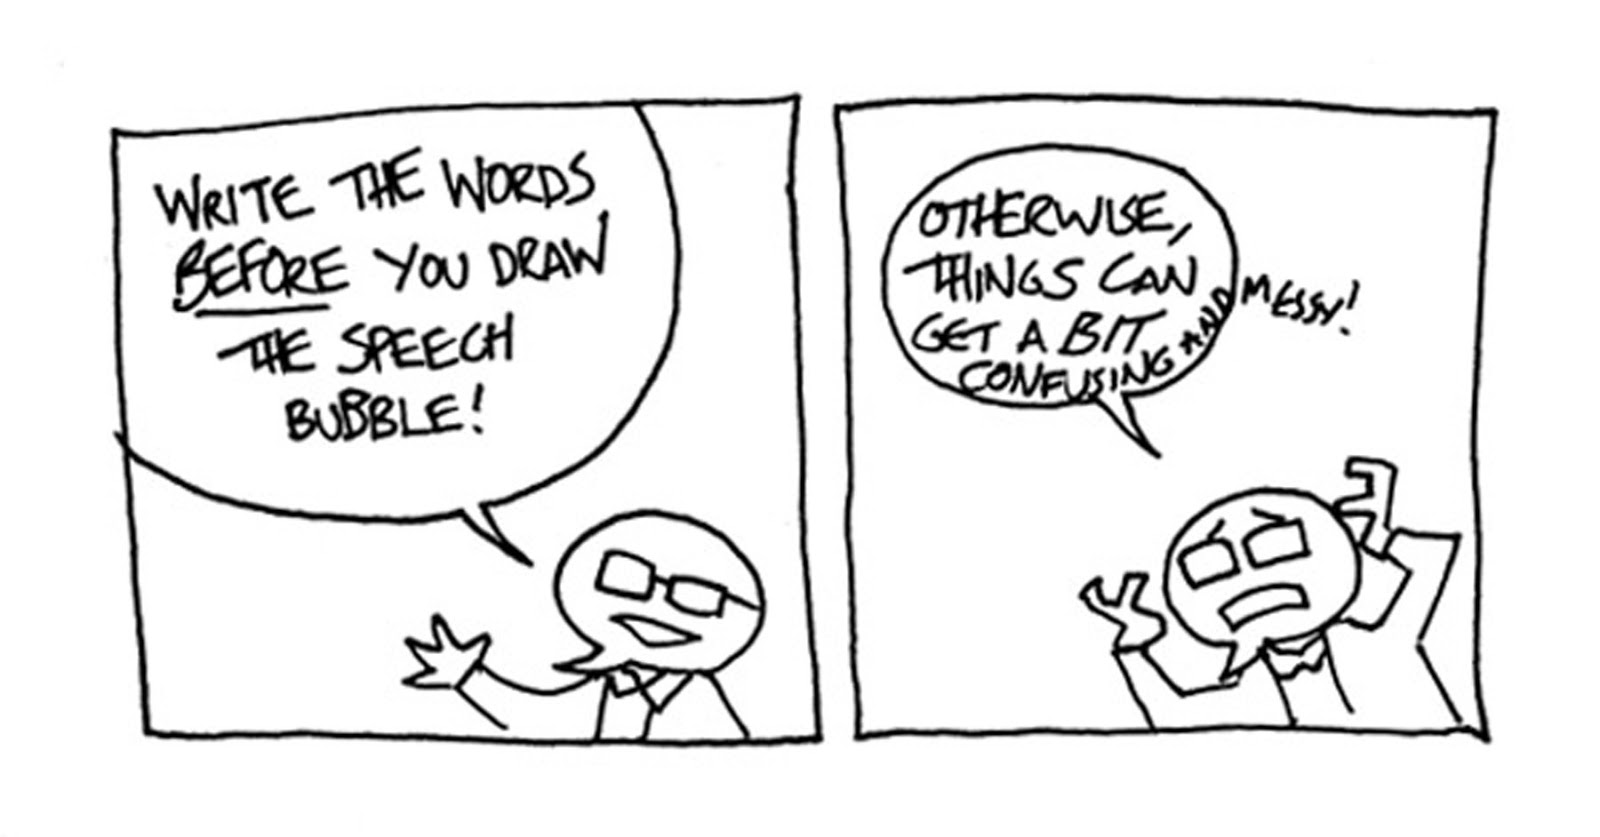 Neill S Blog How To Make Basically Legible Comics